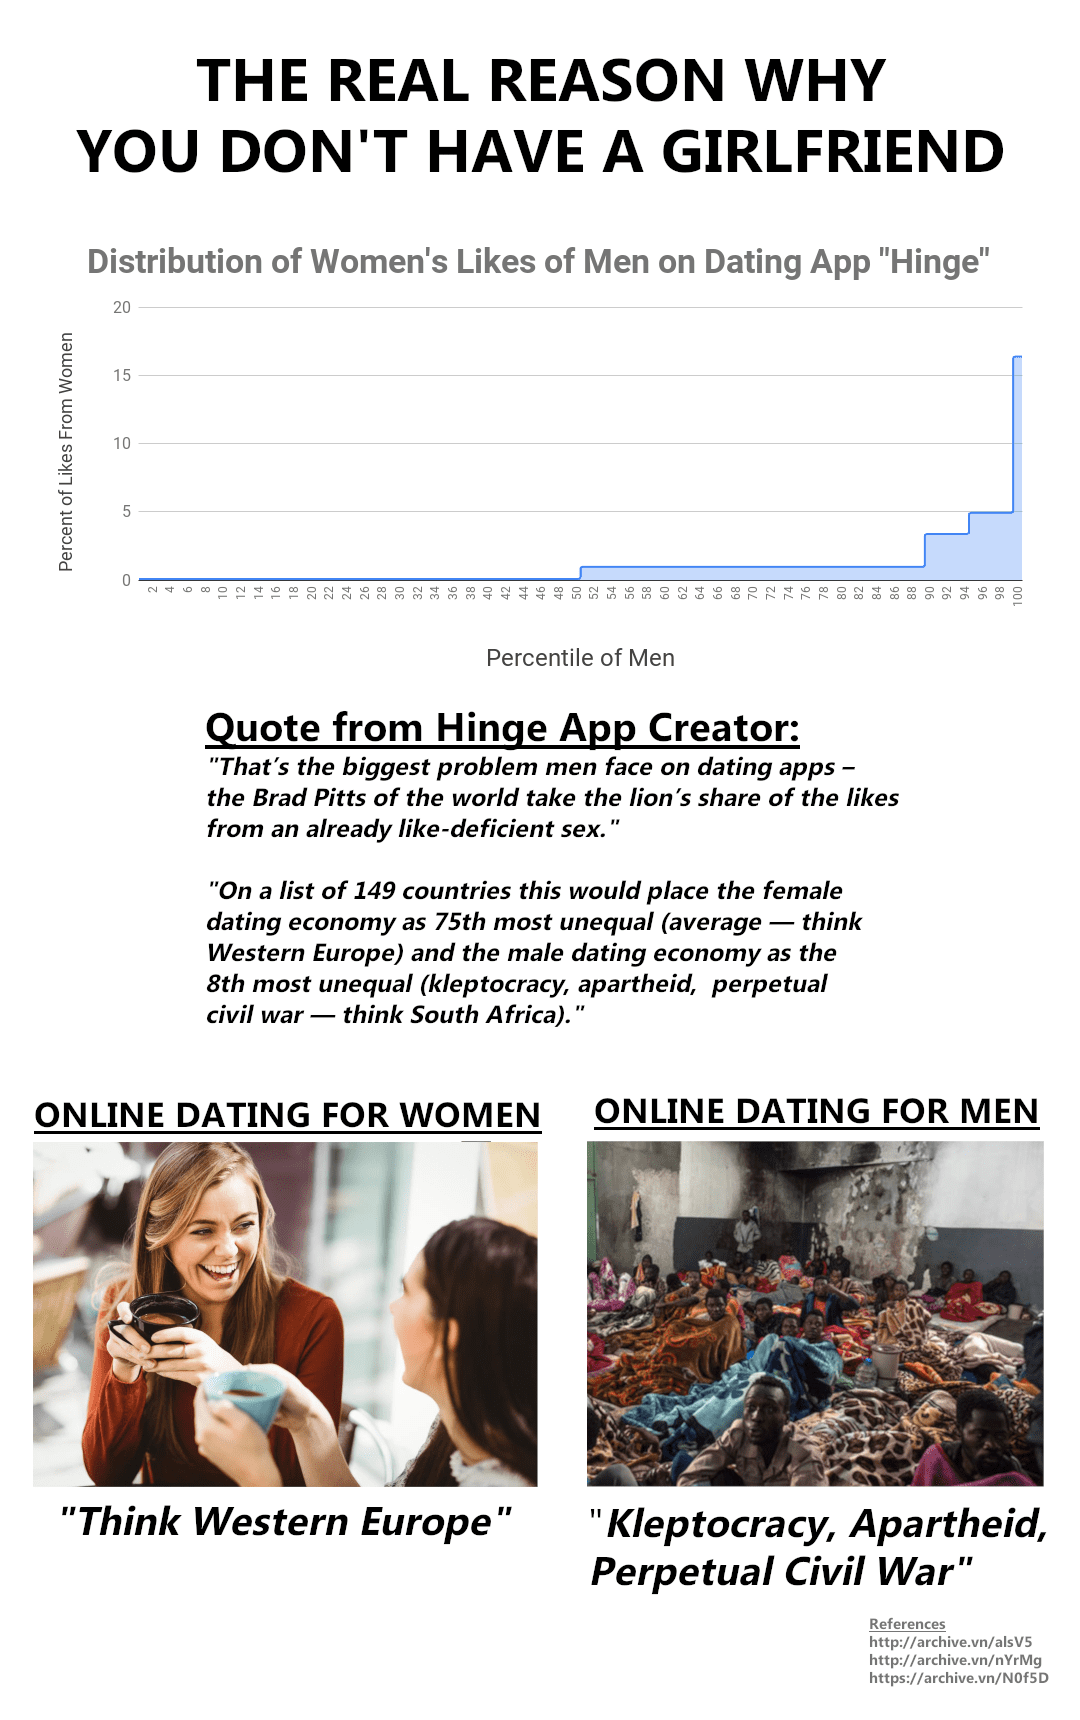 hinge-infographic-alternate-title-png.77912